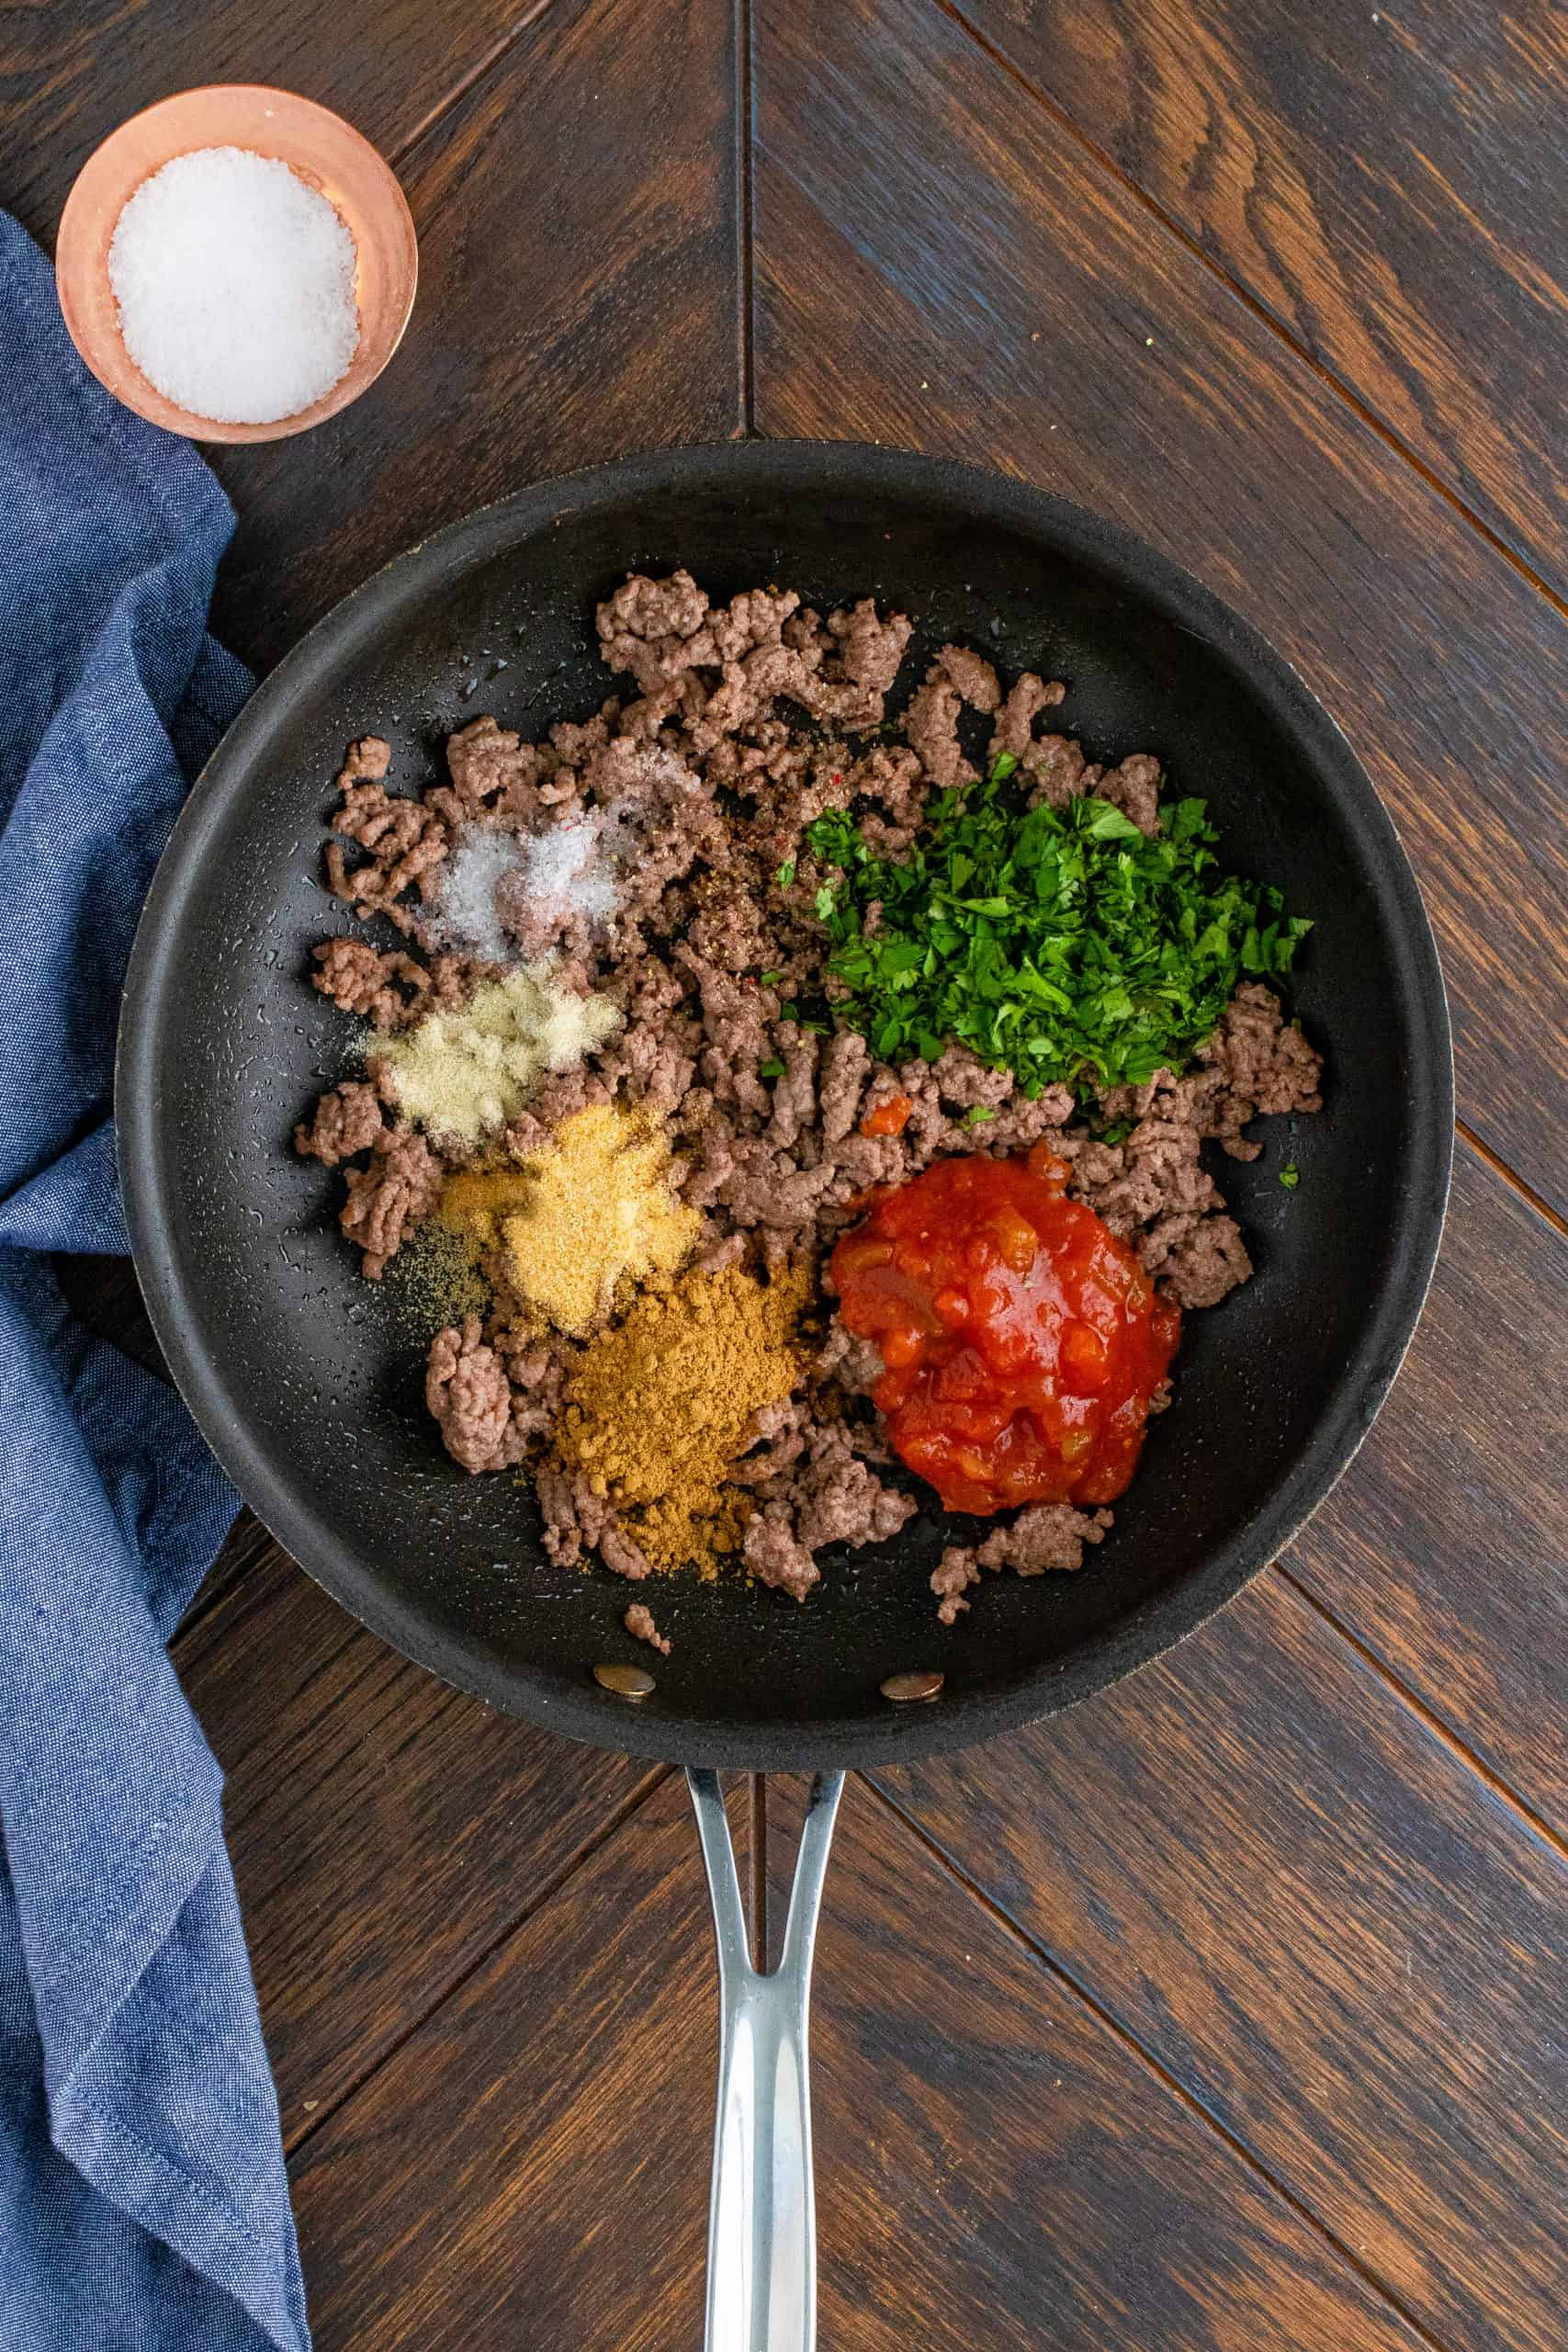 Cumin, garlic powder, onion powder, salt, pepper, salsa, water, and cilantro added to cooked ground beef in pan with blue linen on the side.